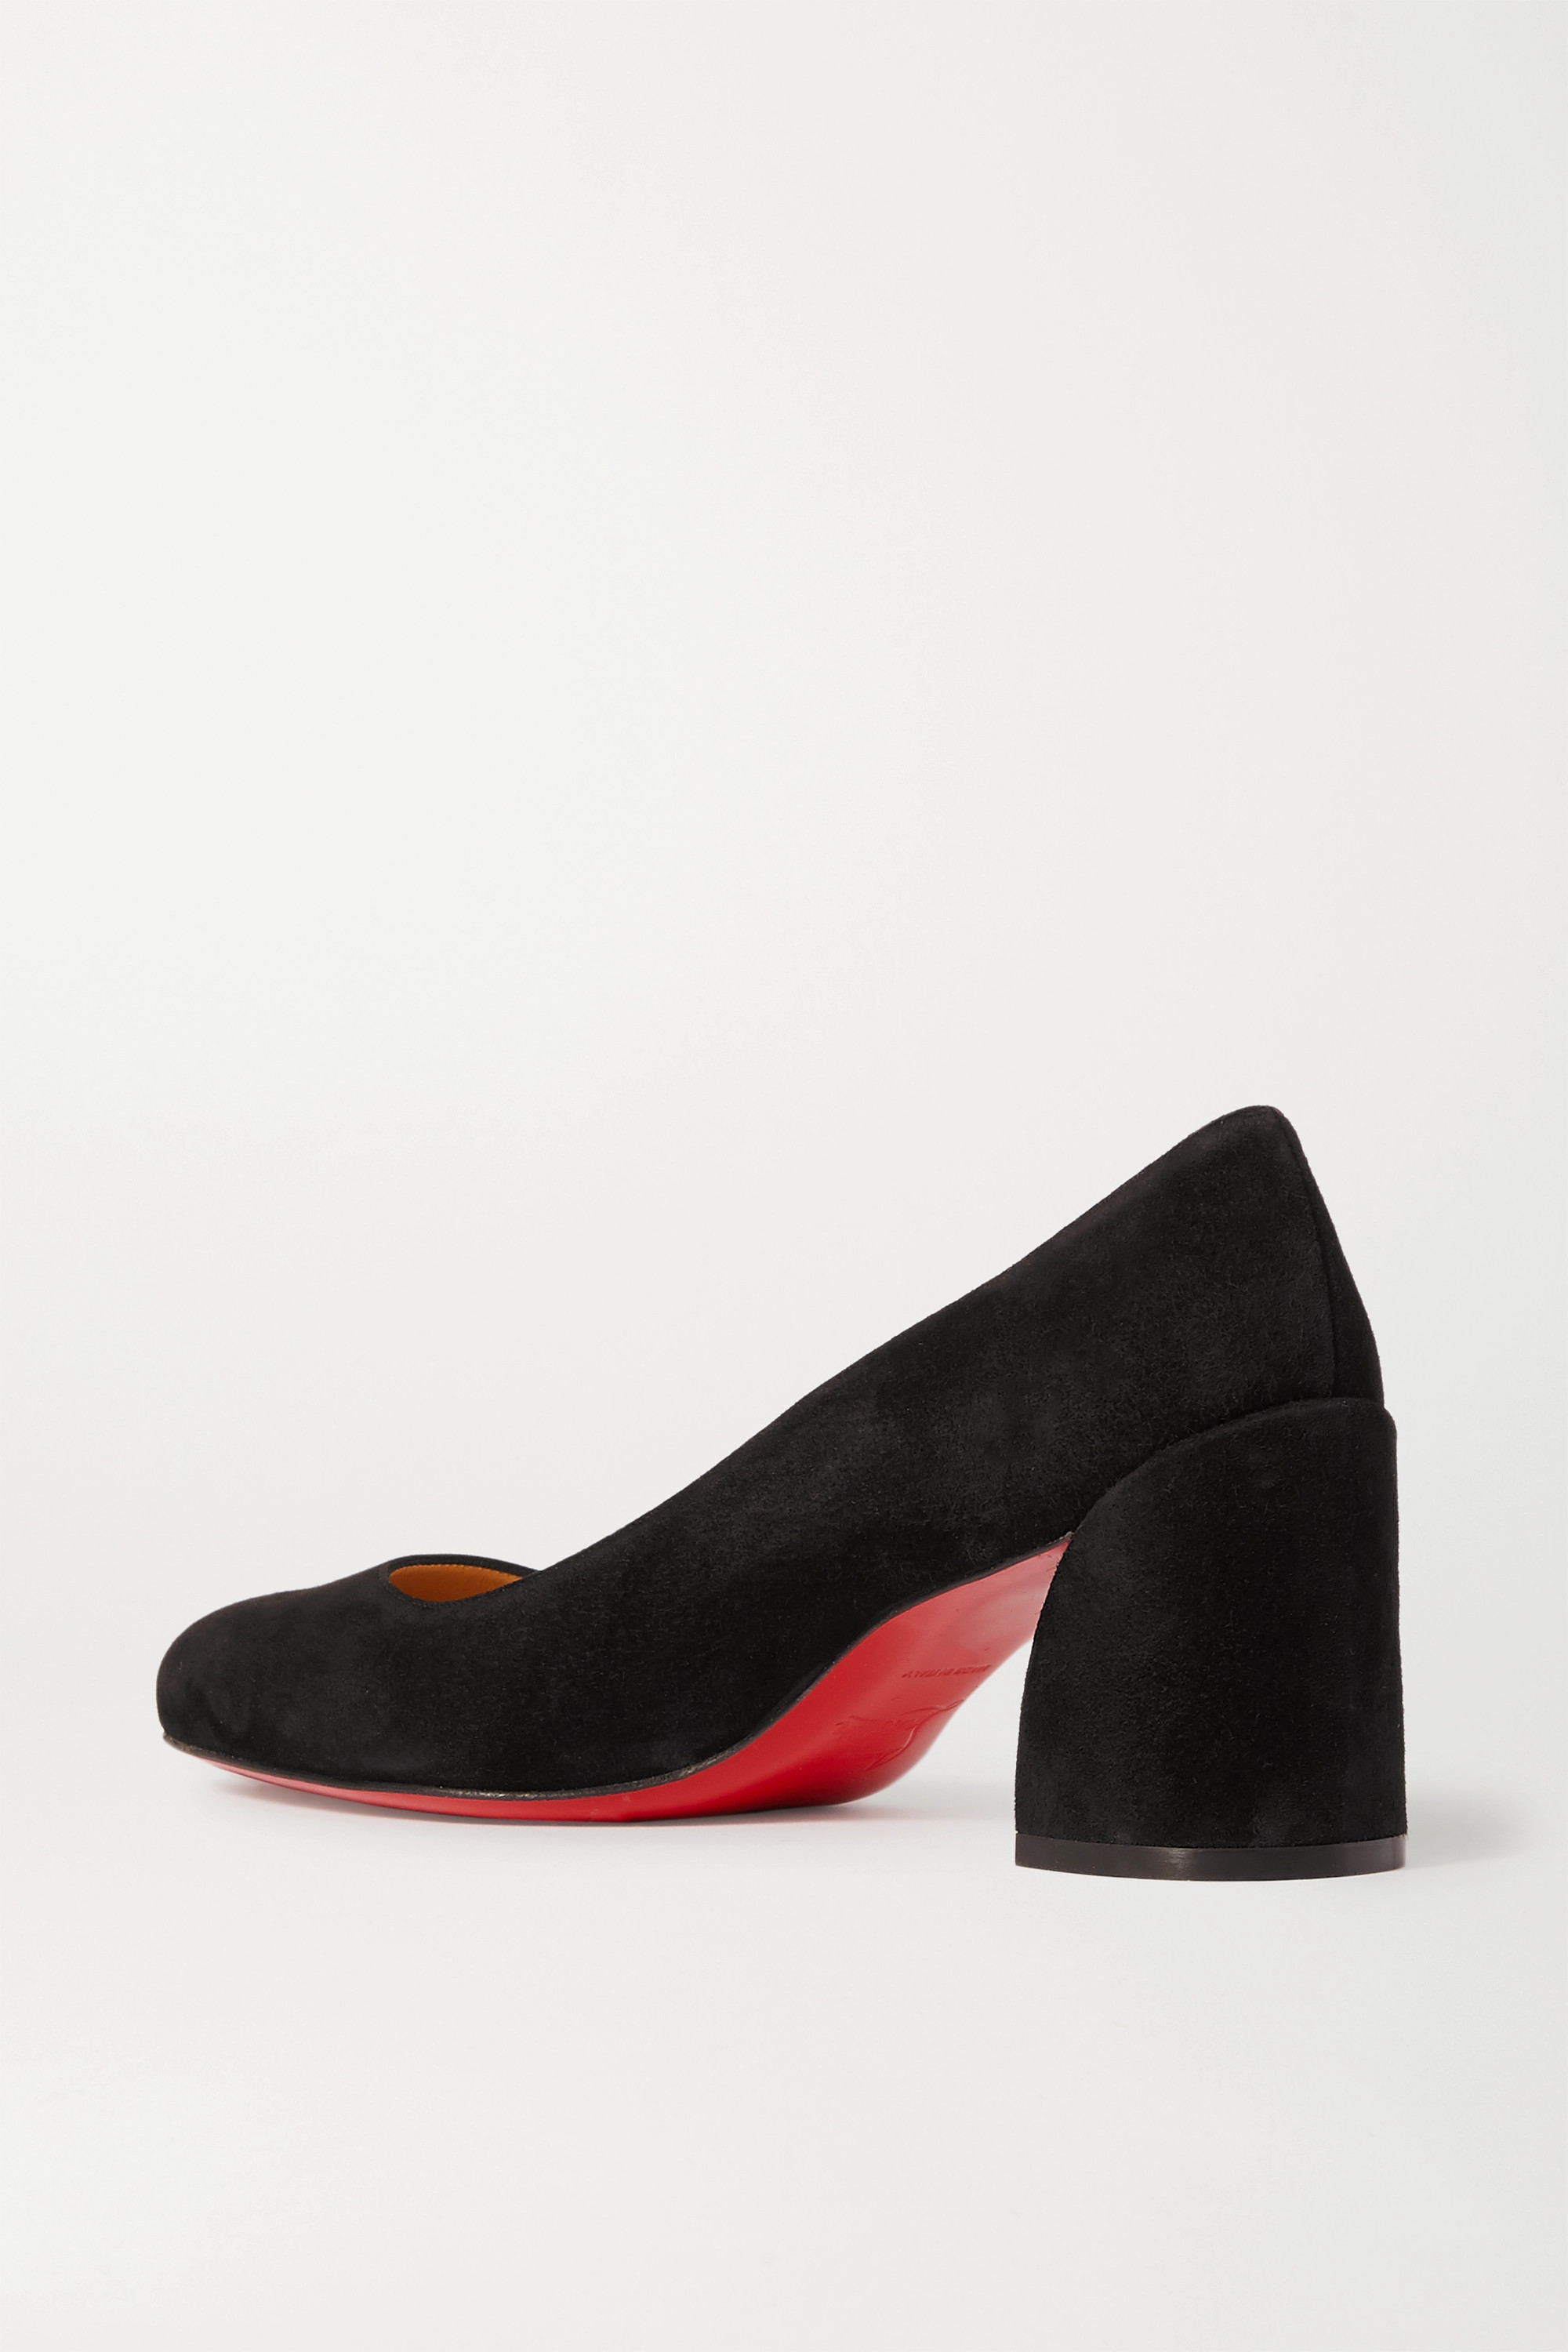 Christian Louboutin Miss Sab 55 suede pumps